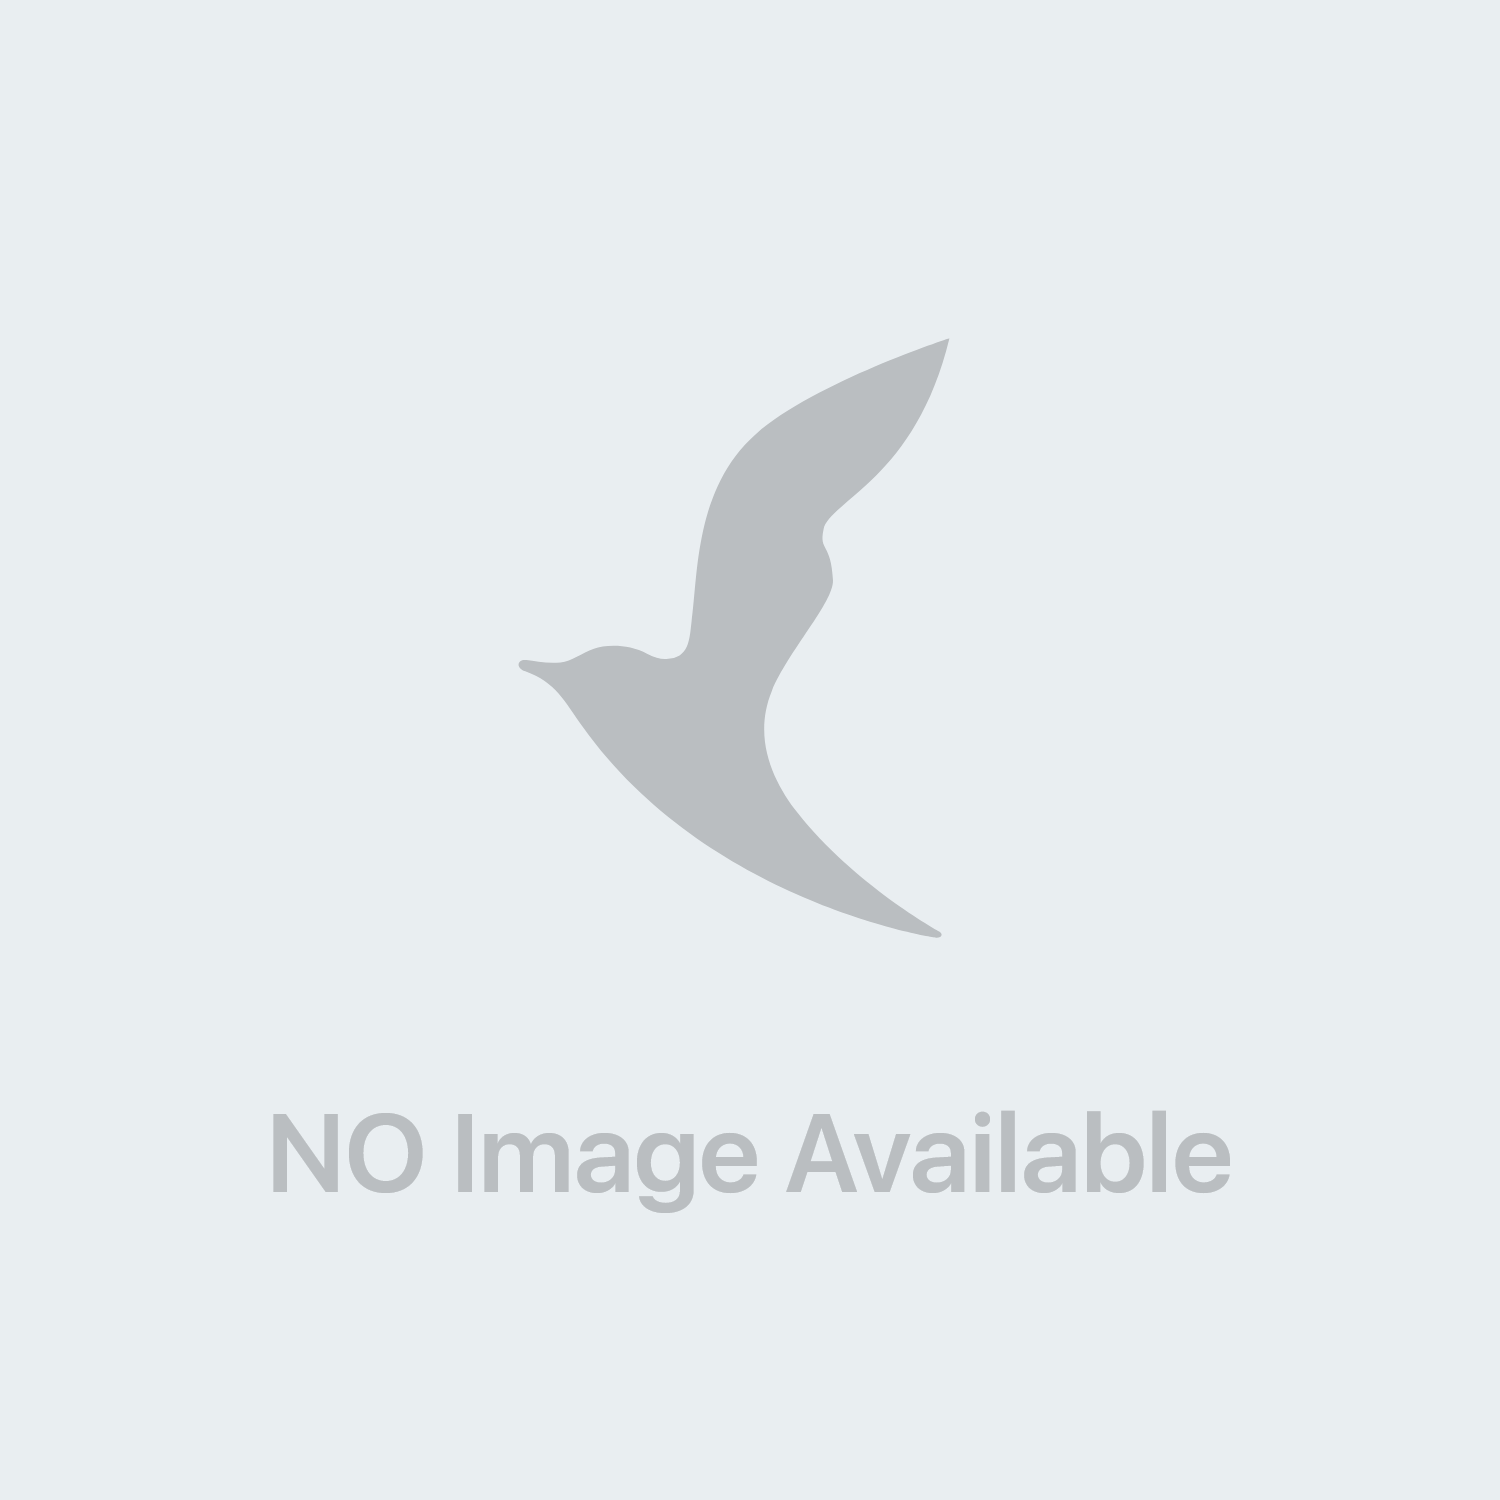 Uriage Kératosane 30 Gel Crema Cheratolitico 75 ml